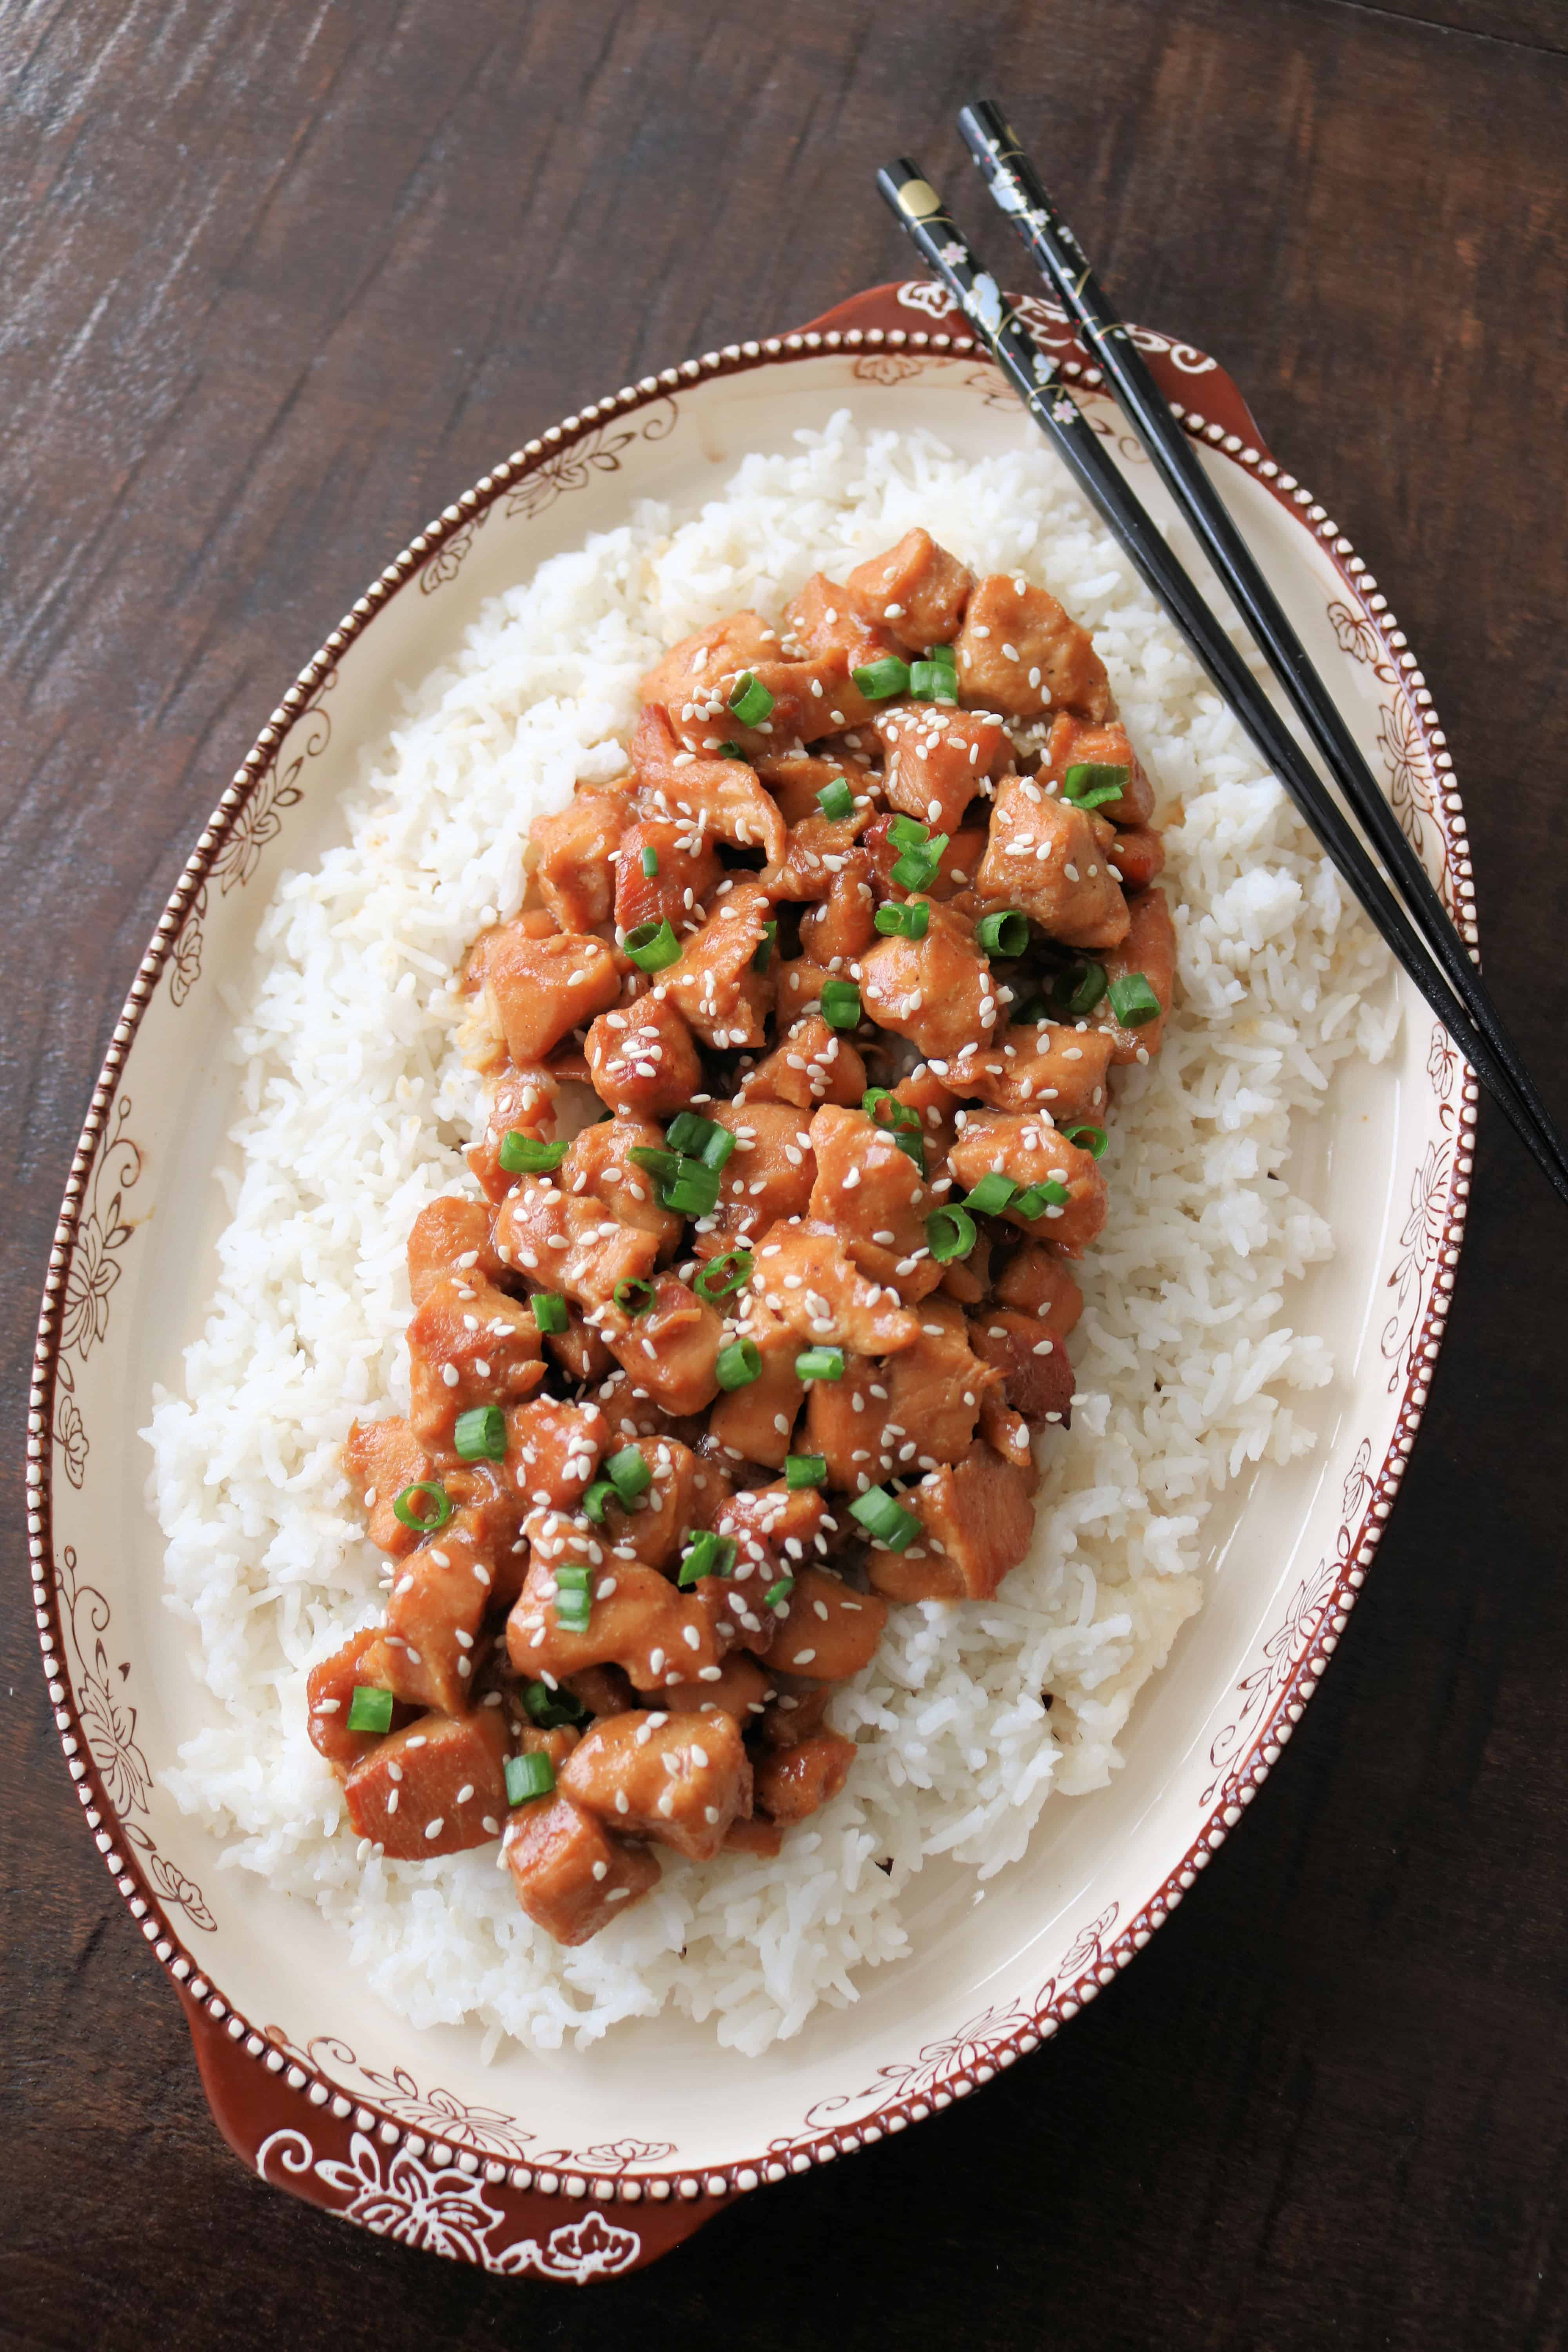 Try my delicious and easy slow cooker honey sesame chicken that's healthier than Asian take-out and made in the crockpot with diced boneless skinless chicken breast and a simple honey soy sauce. Serve with veggies and rice or noodles for an easy weeknight dinner the whole family will love. Freezer-friendly and great for healthy meal prep! #chicken #chinesefood #dinner